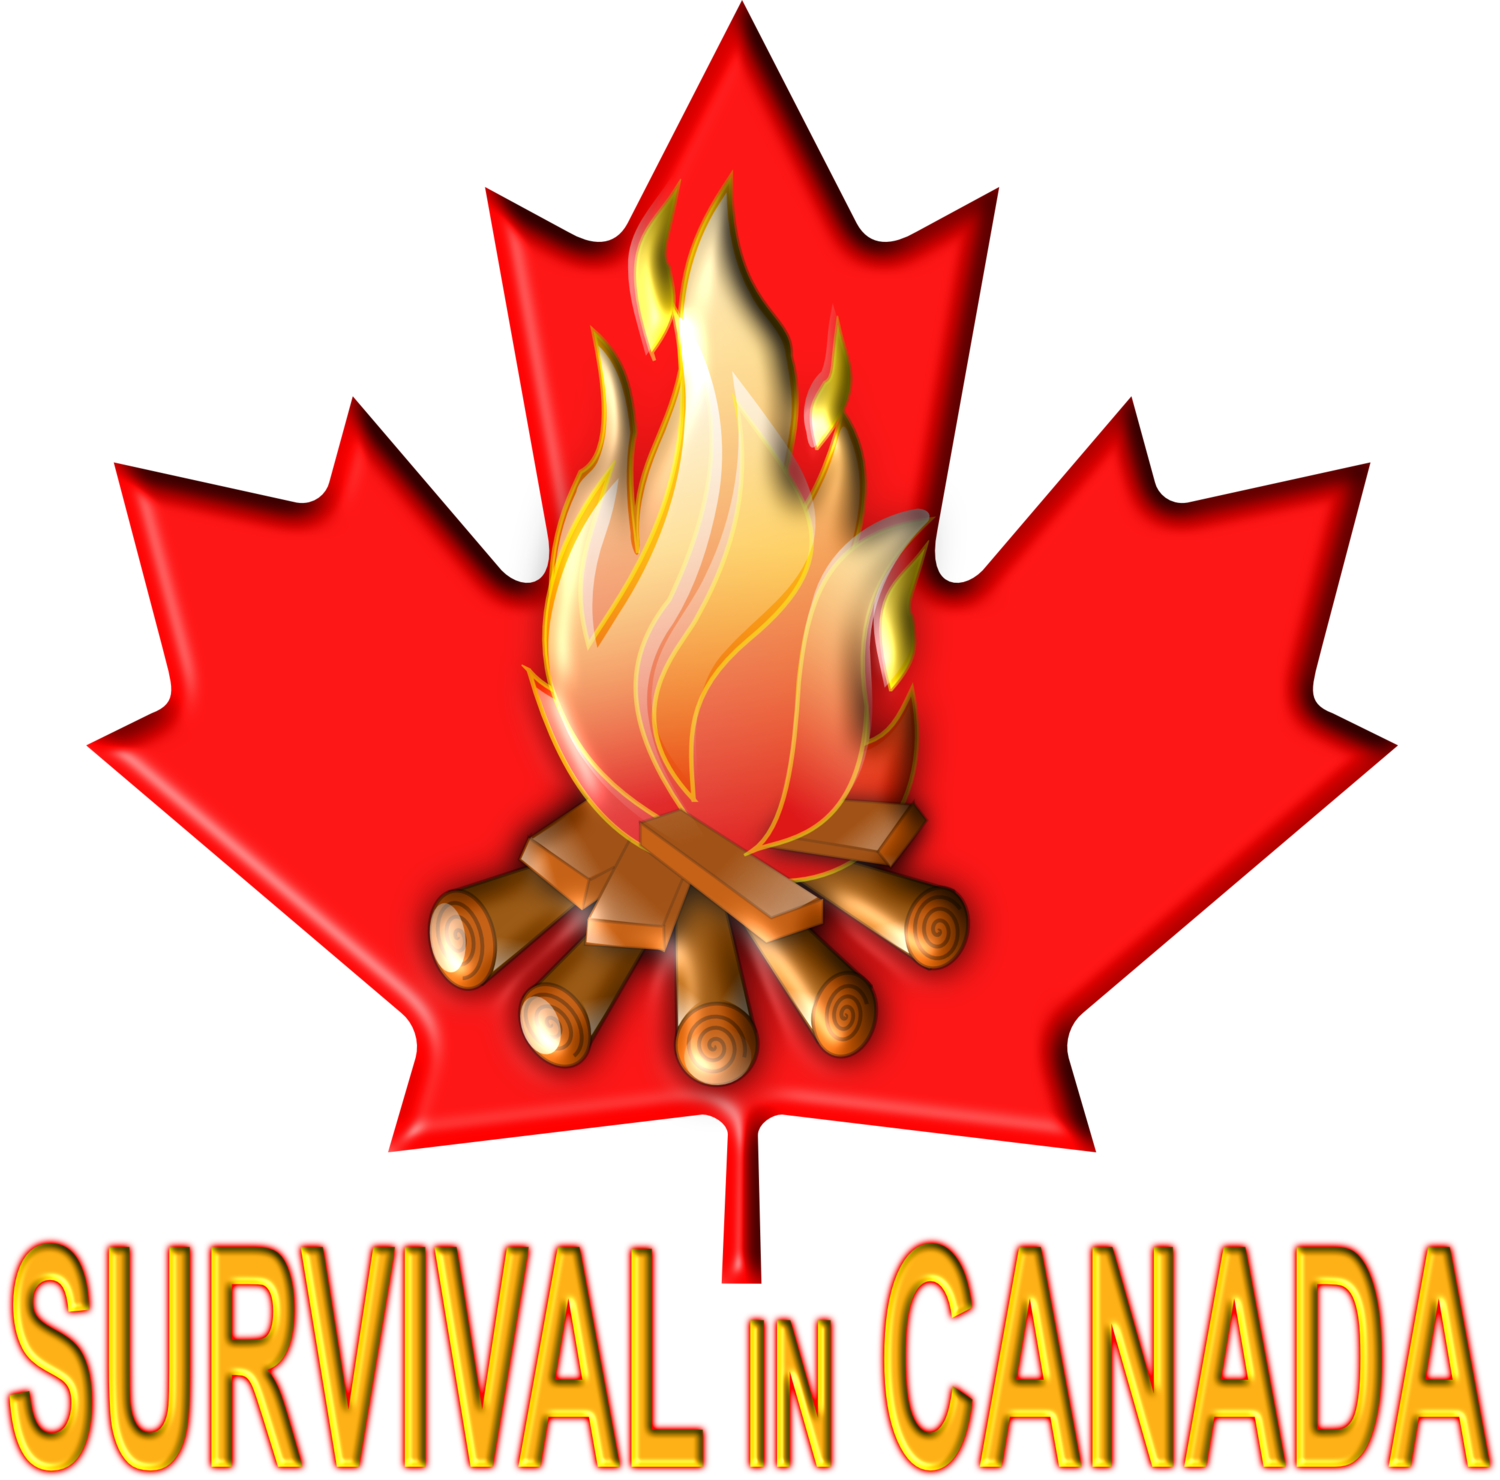 Survival in Canada